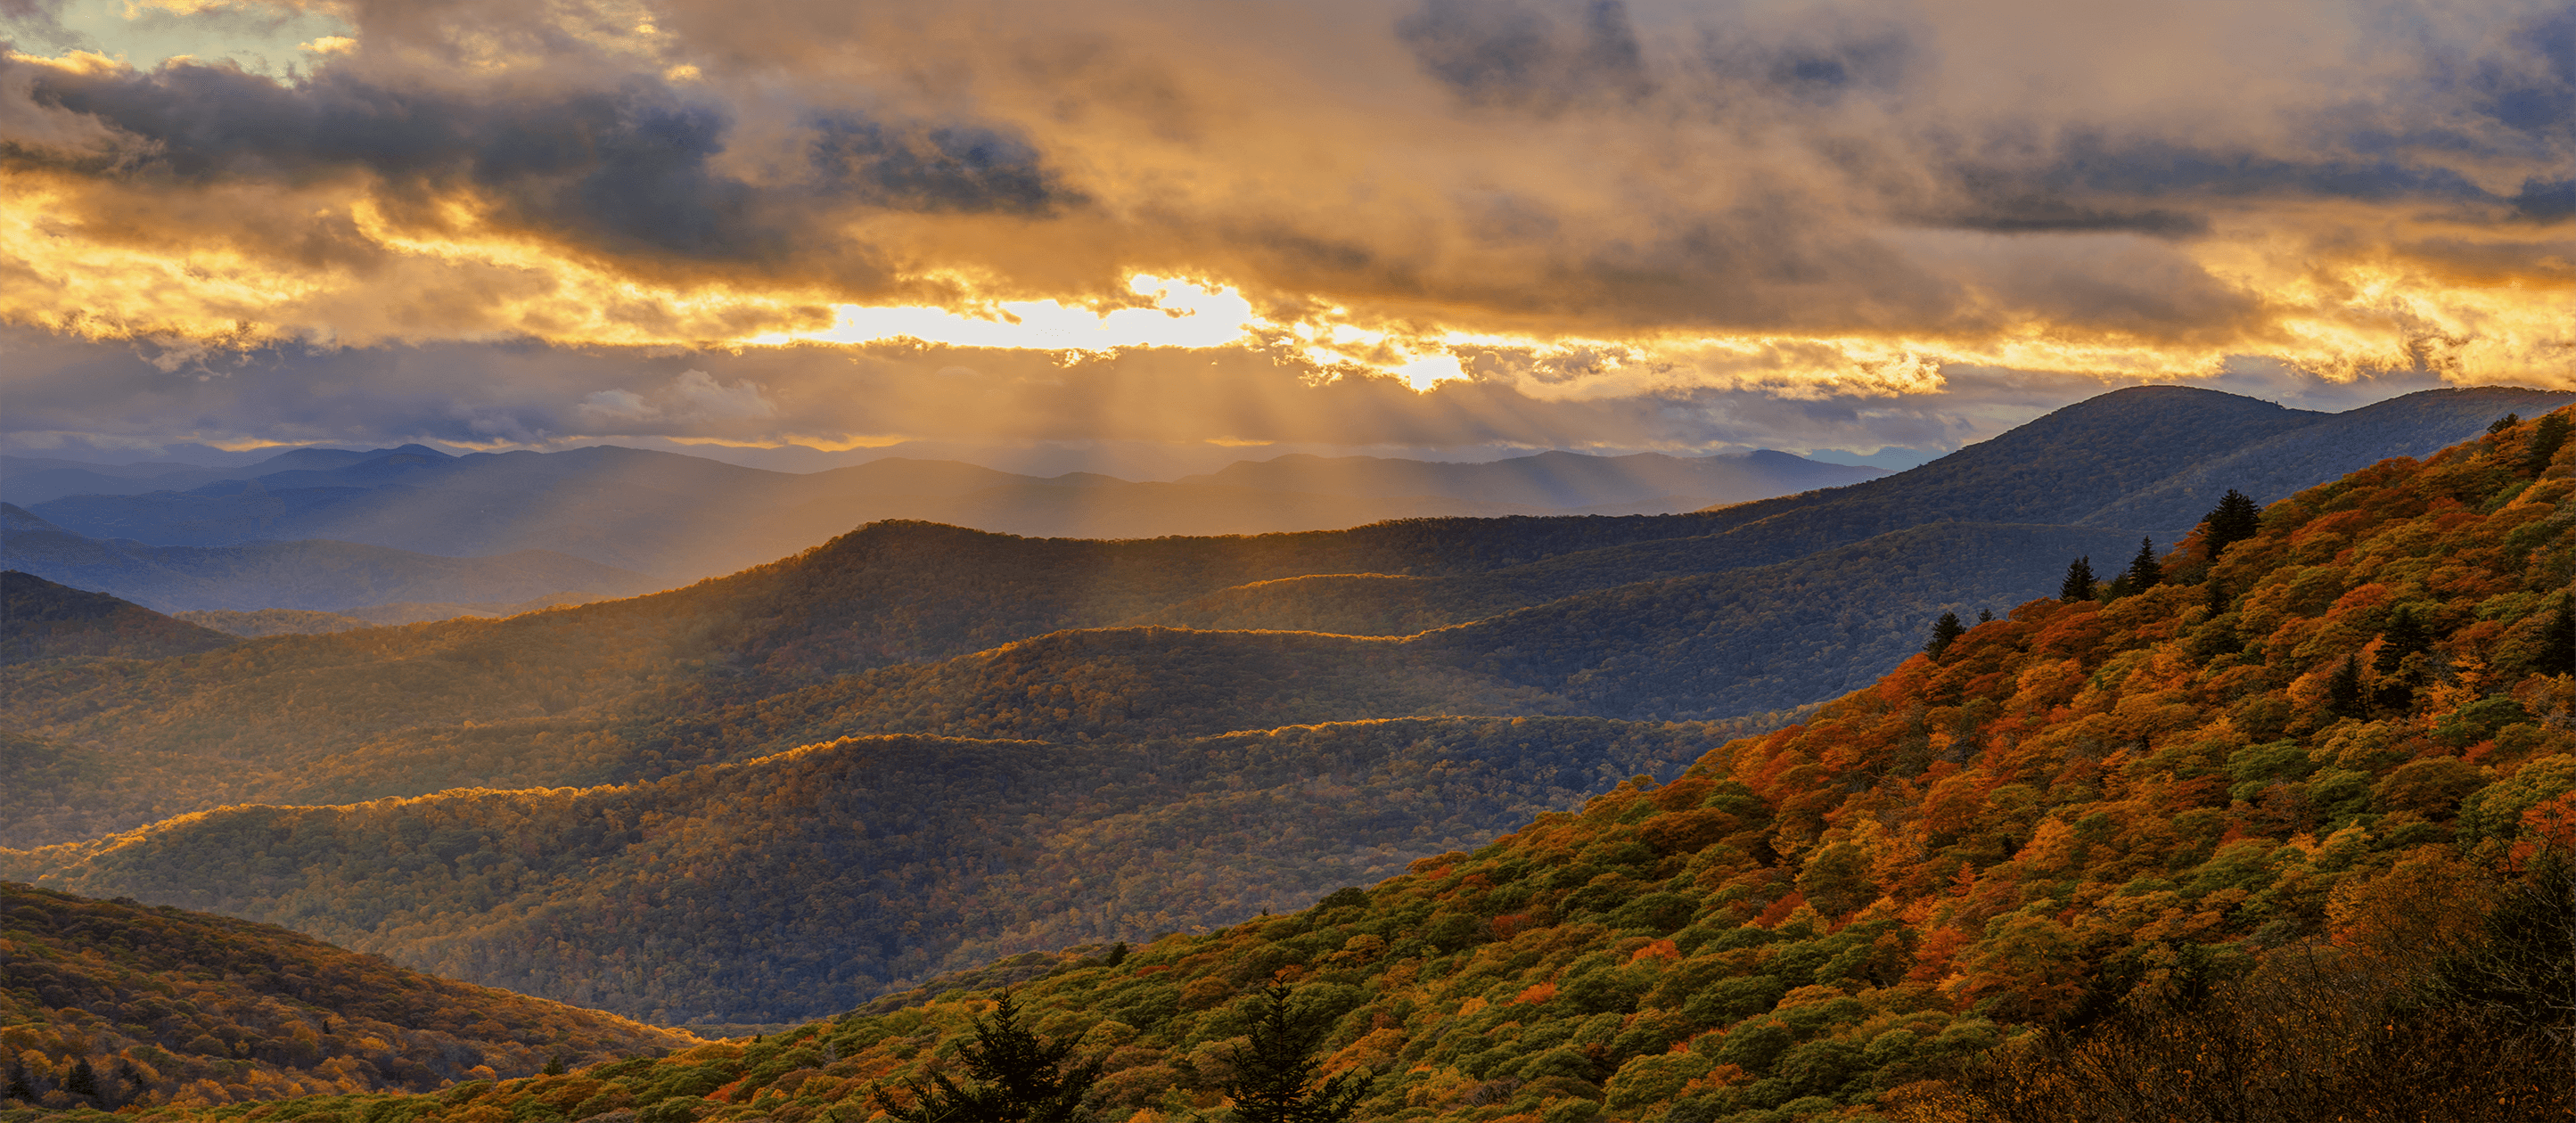 Image of mountain chain with clouds at sunset